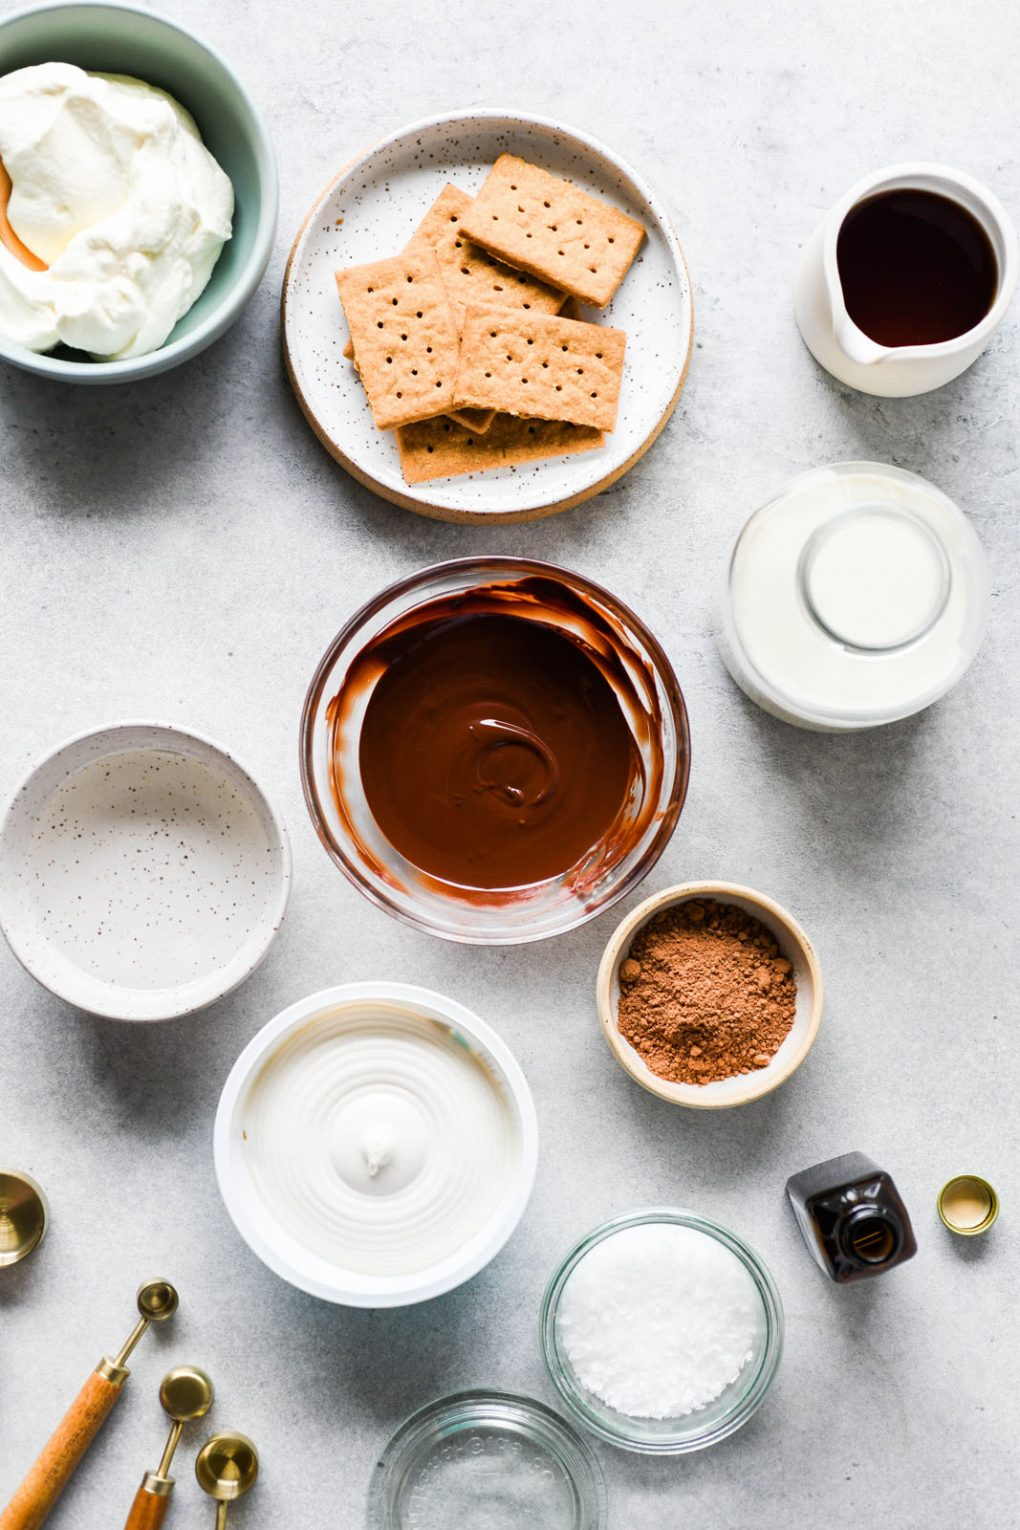 A flat lay of all the ingredients needed to make vegan chocolate mousse. Graham crackers, melted chocolate, non dairy milk, cacao powder, dairy free cream cheese, coconut oil, vanilla, sea salt, and whipped cream.